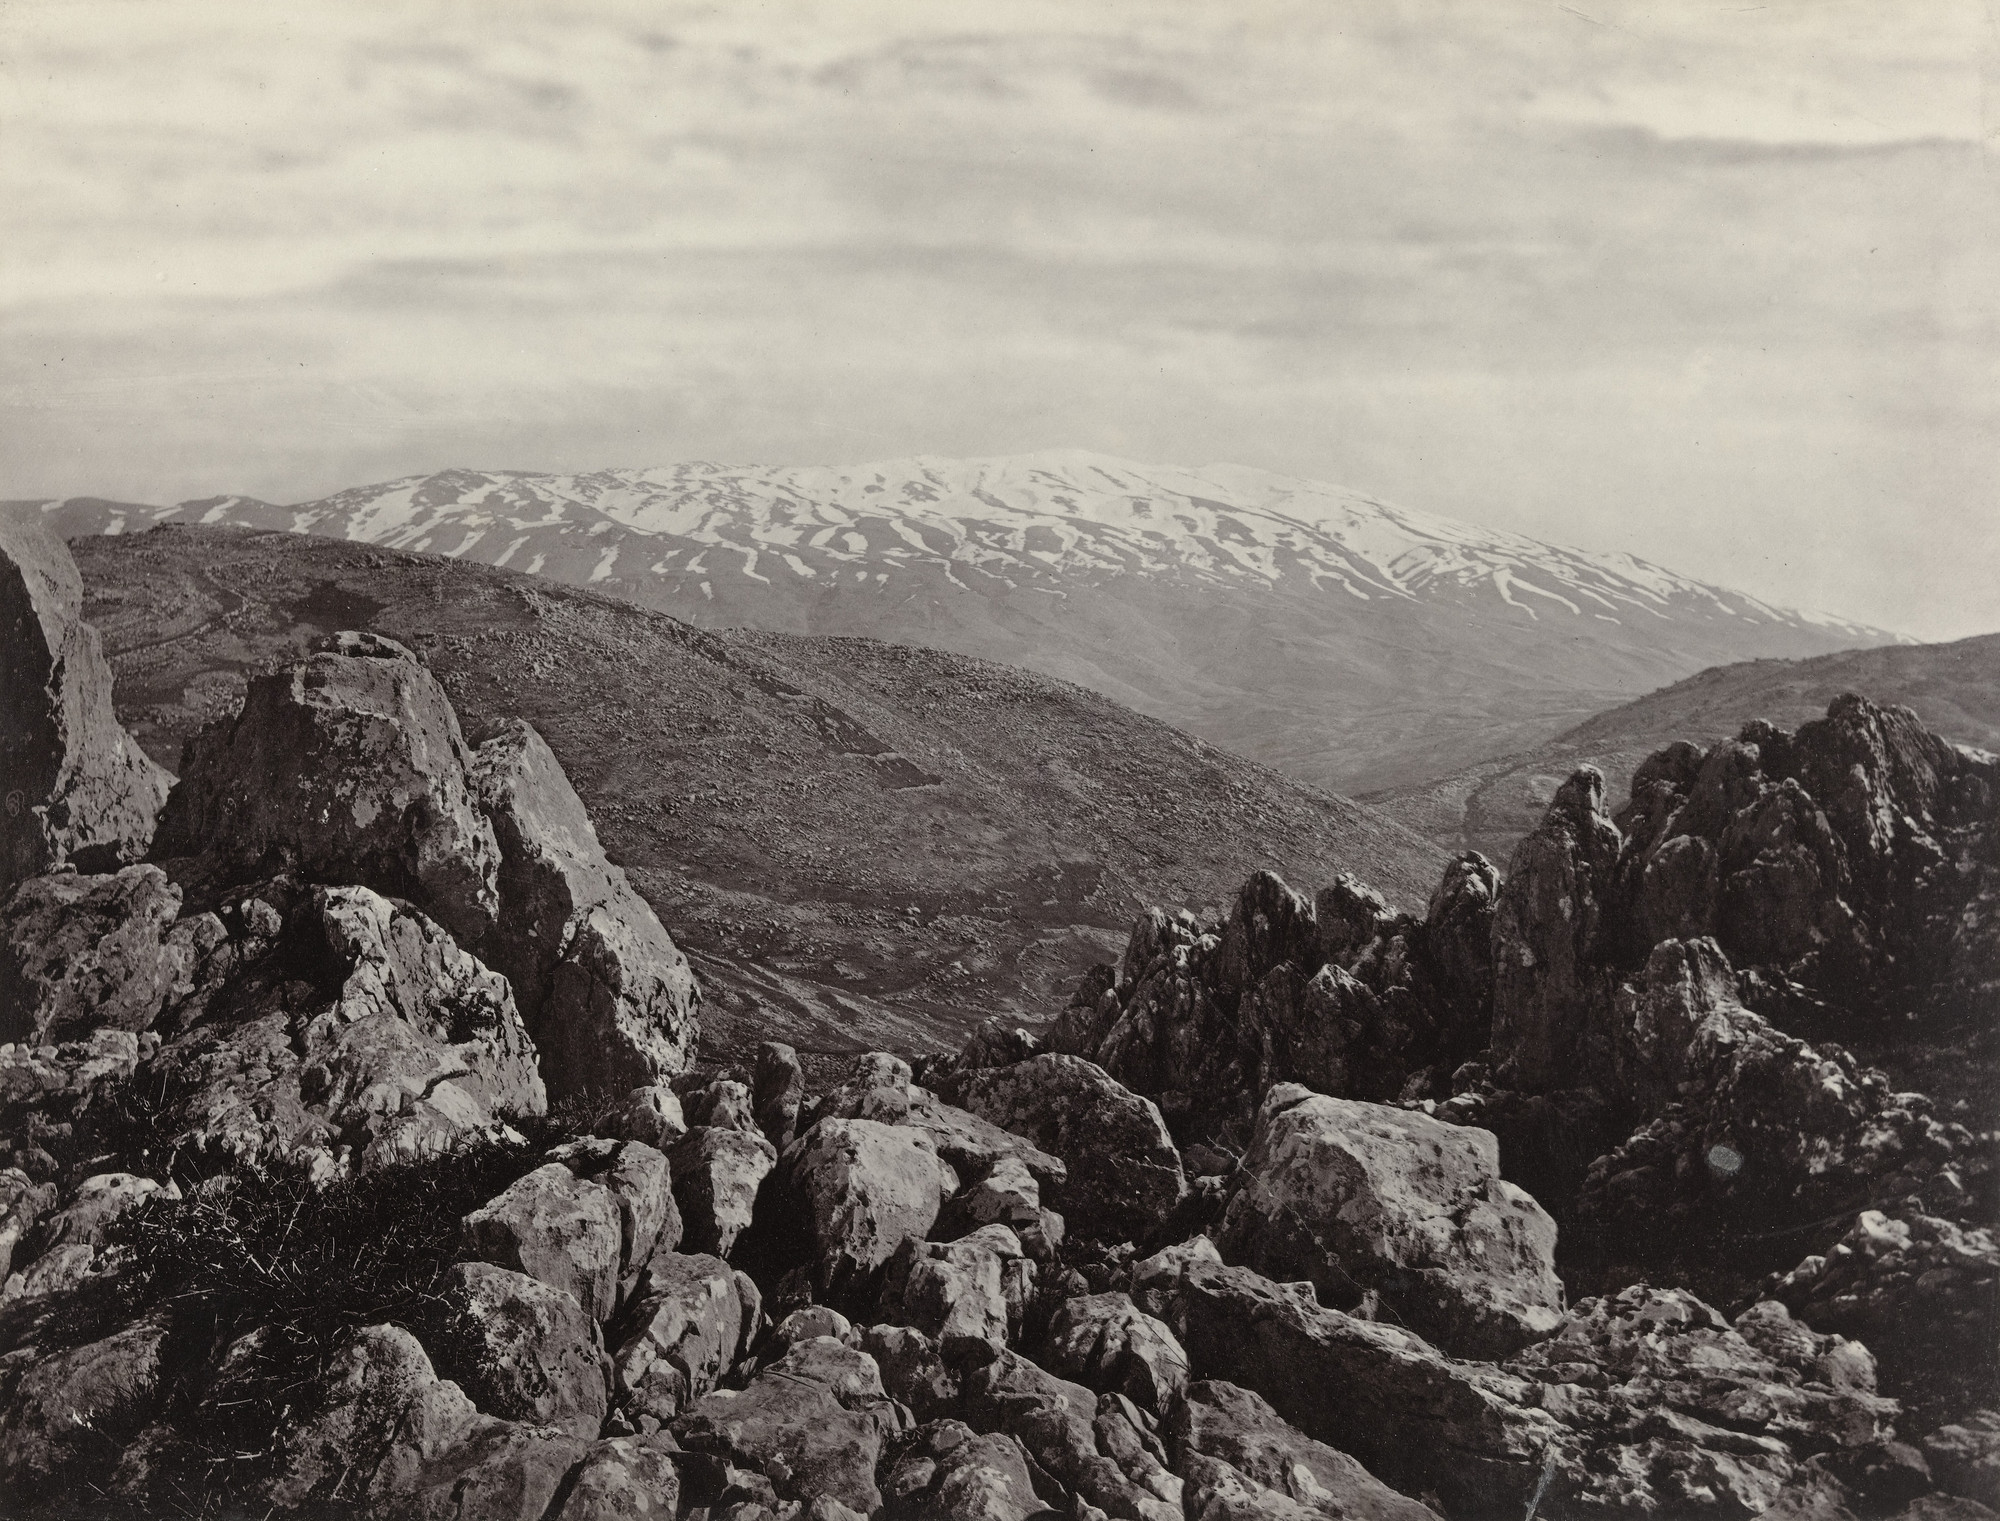 Francis Frith. Mount Hermon. 1855-98